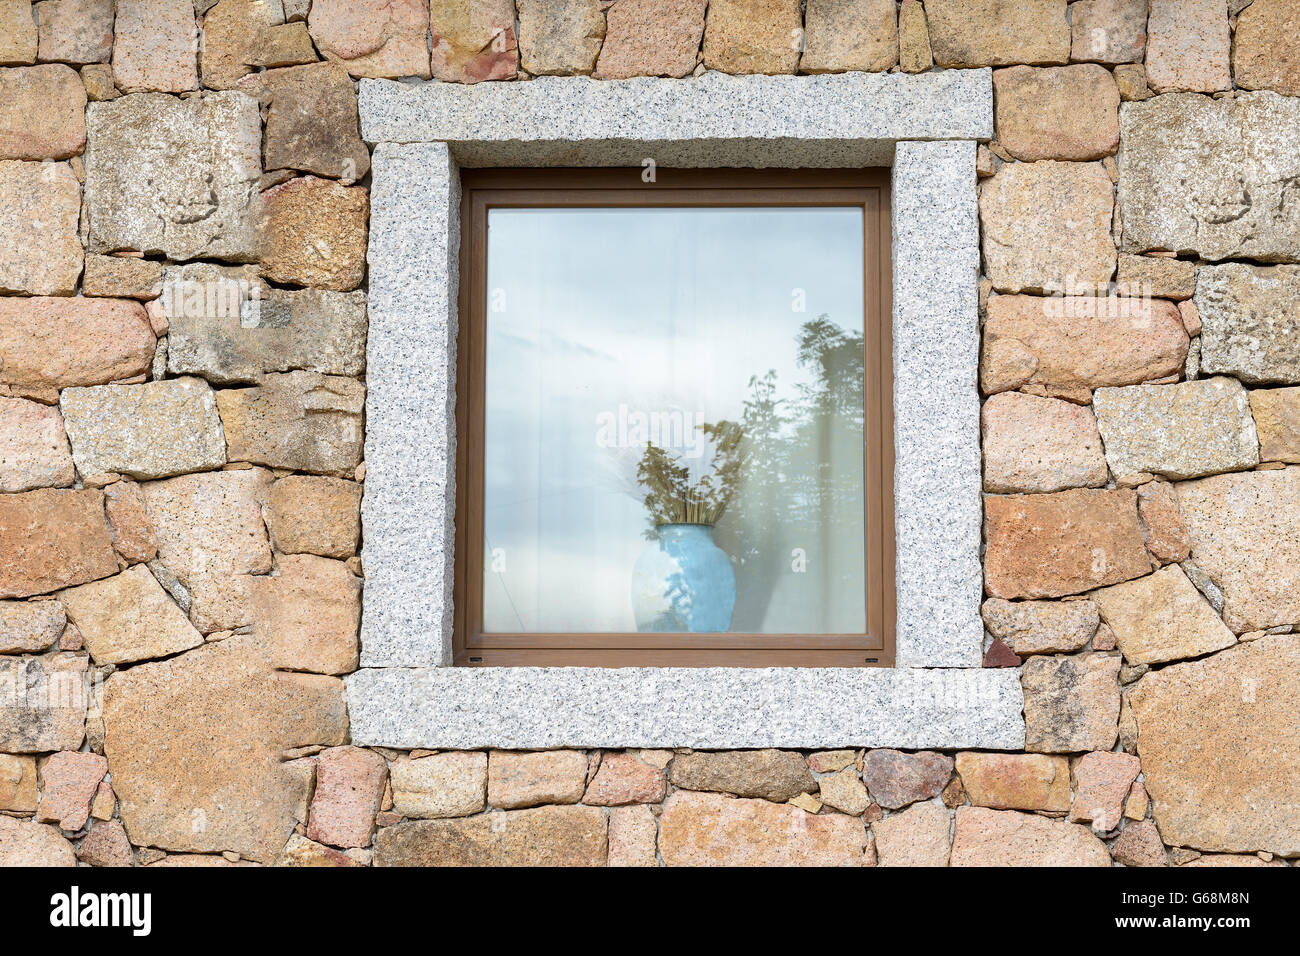 Open window on a block of granite wall with a vase of ears of corn. - Stock Image